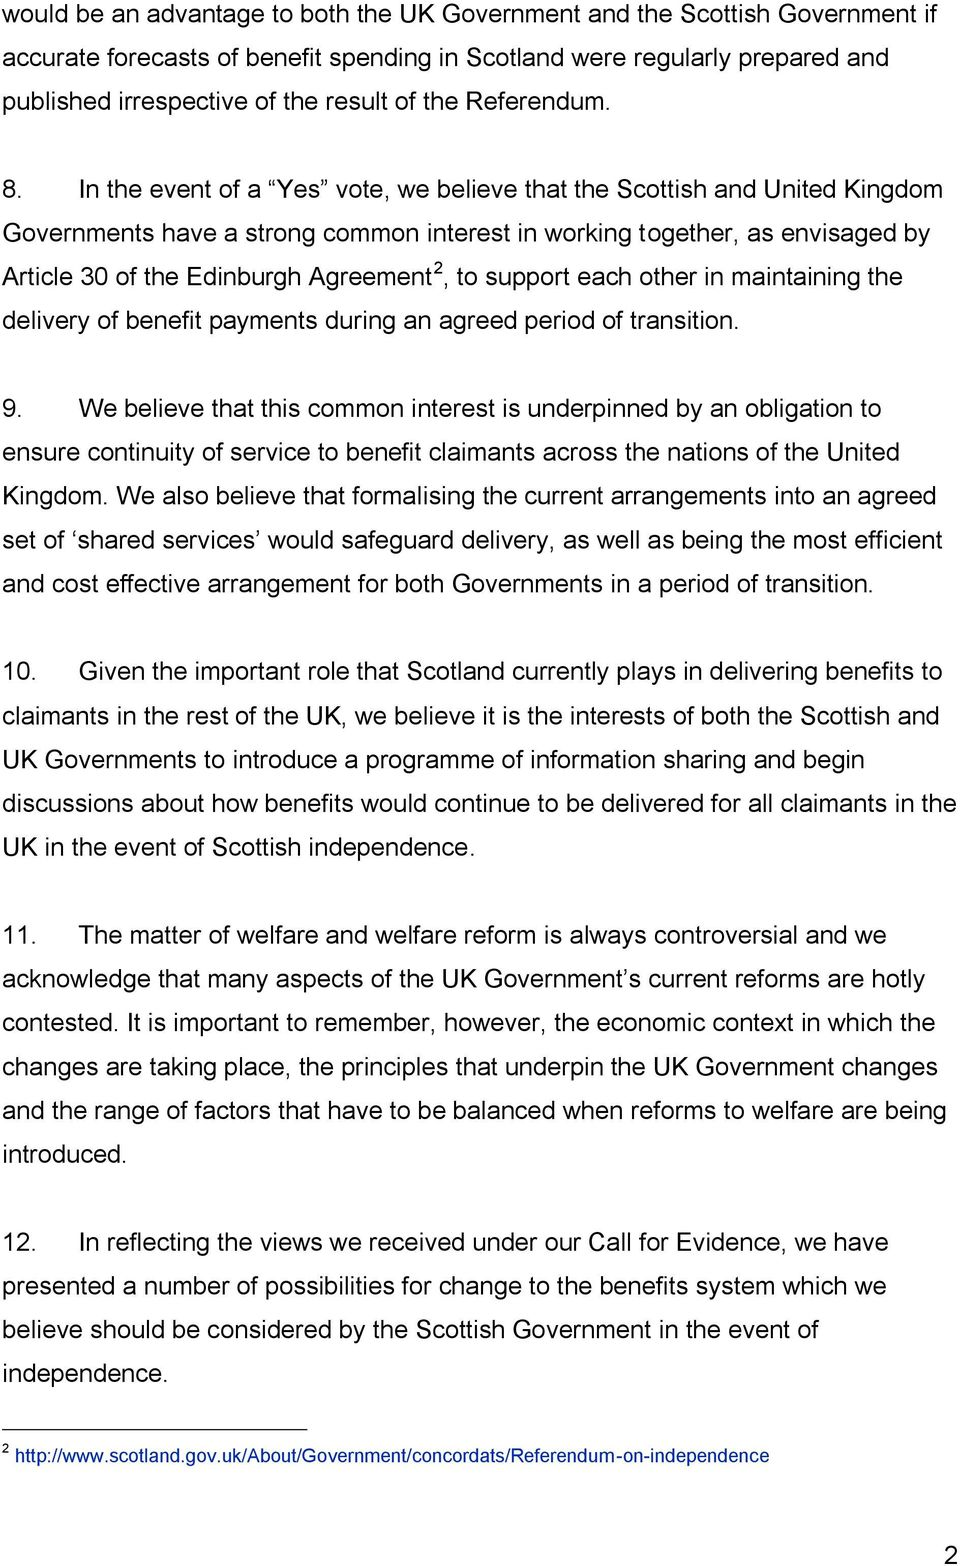 In the event of a Yes vote, we believe that the Scottish and United Kingdom Governments have a strong common interest in working together, as envisaged by Article 30 of the Edinburgh Agreement 2, to